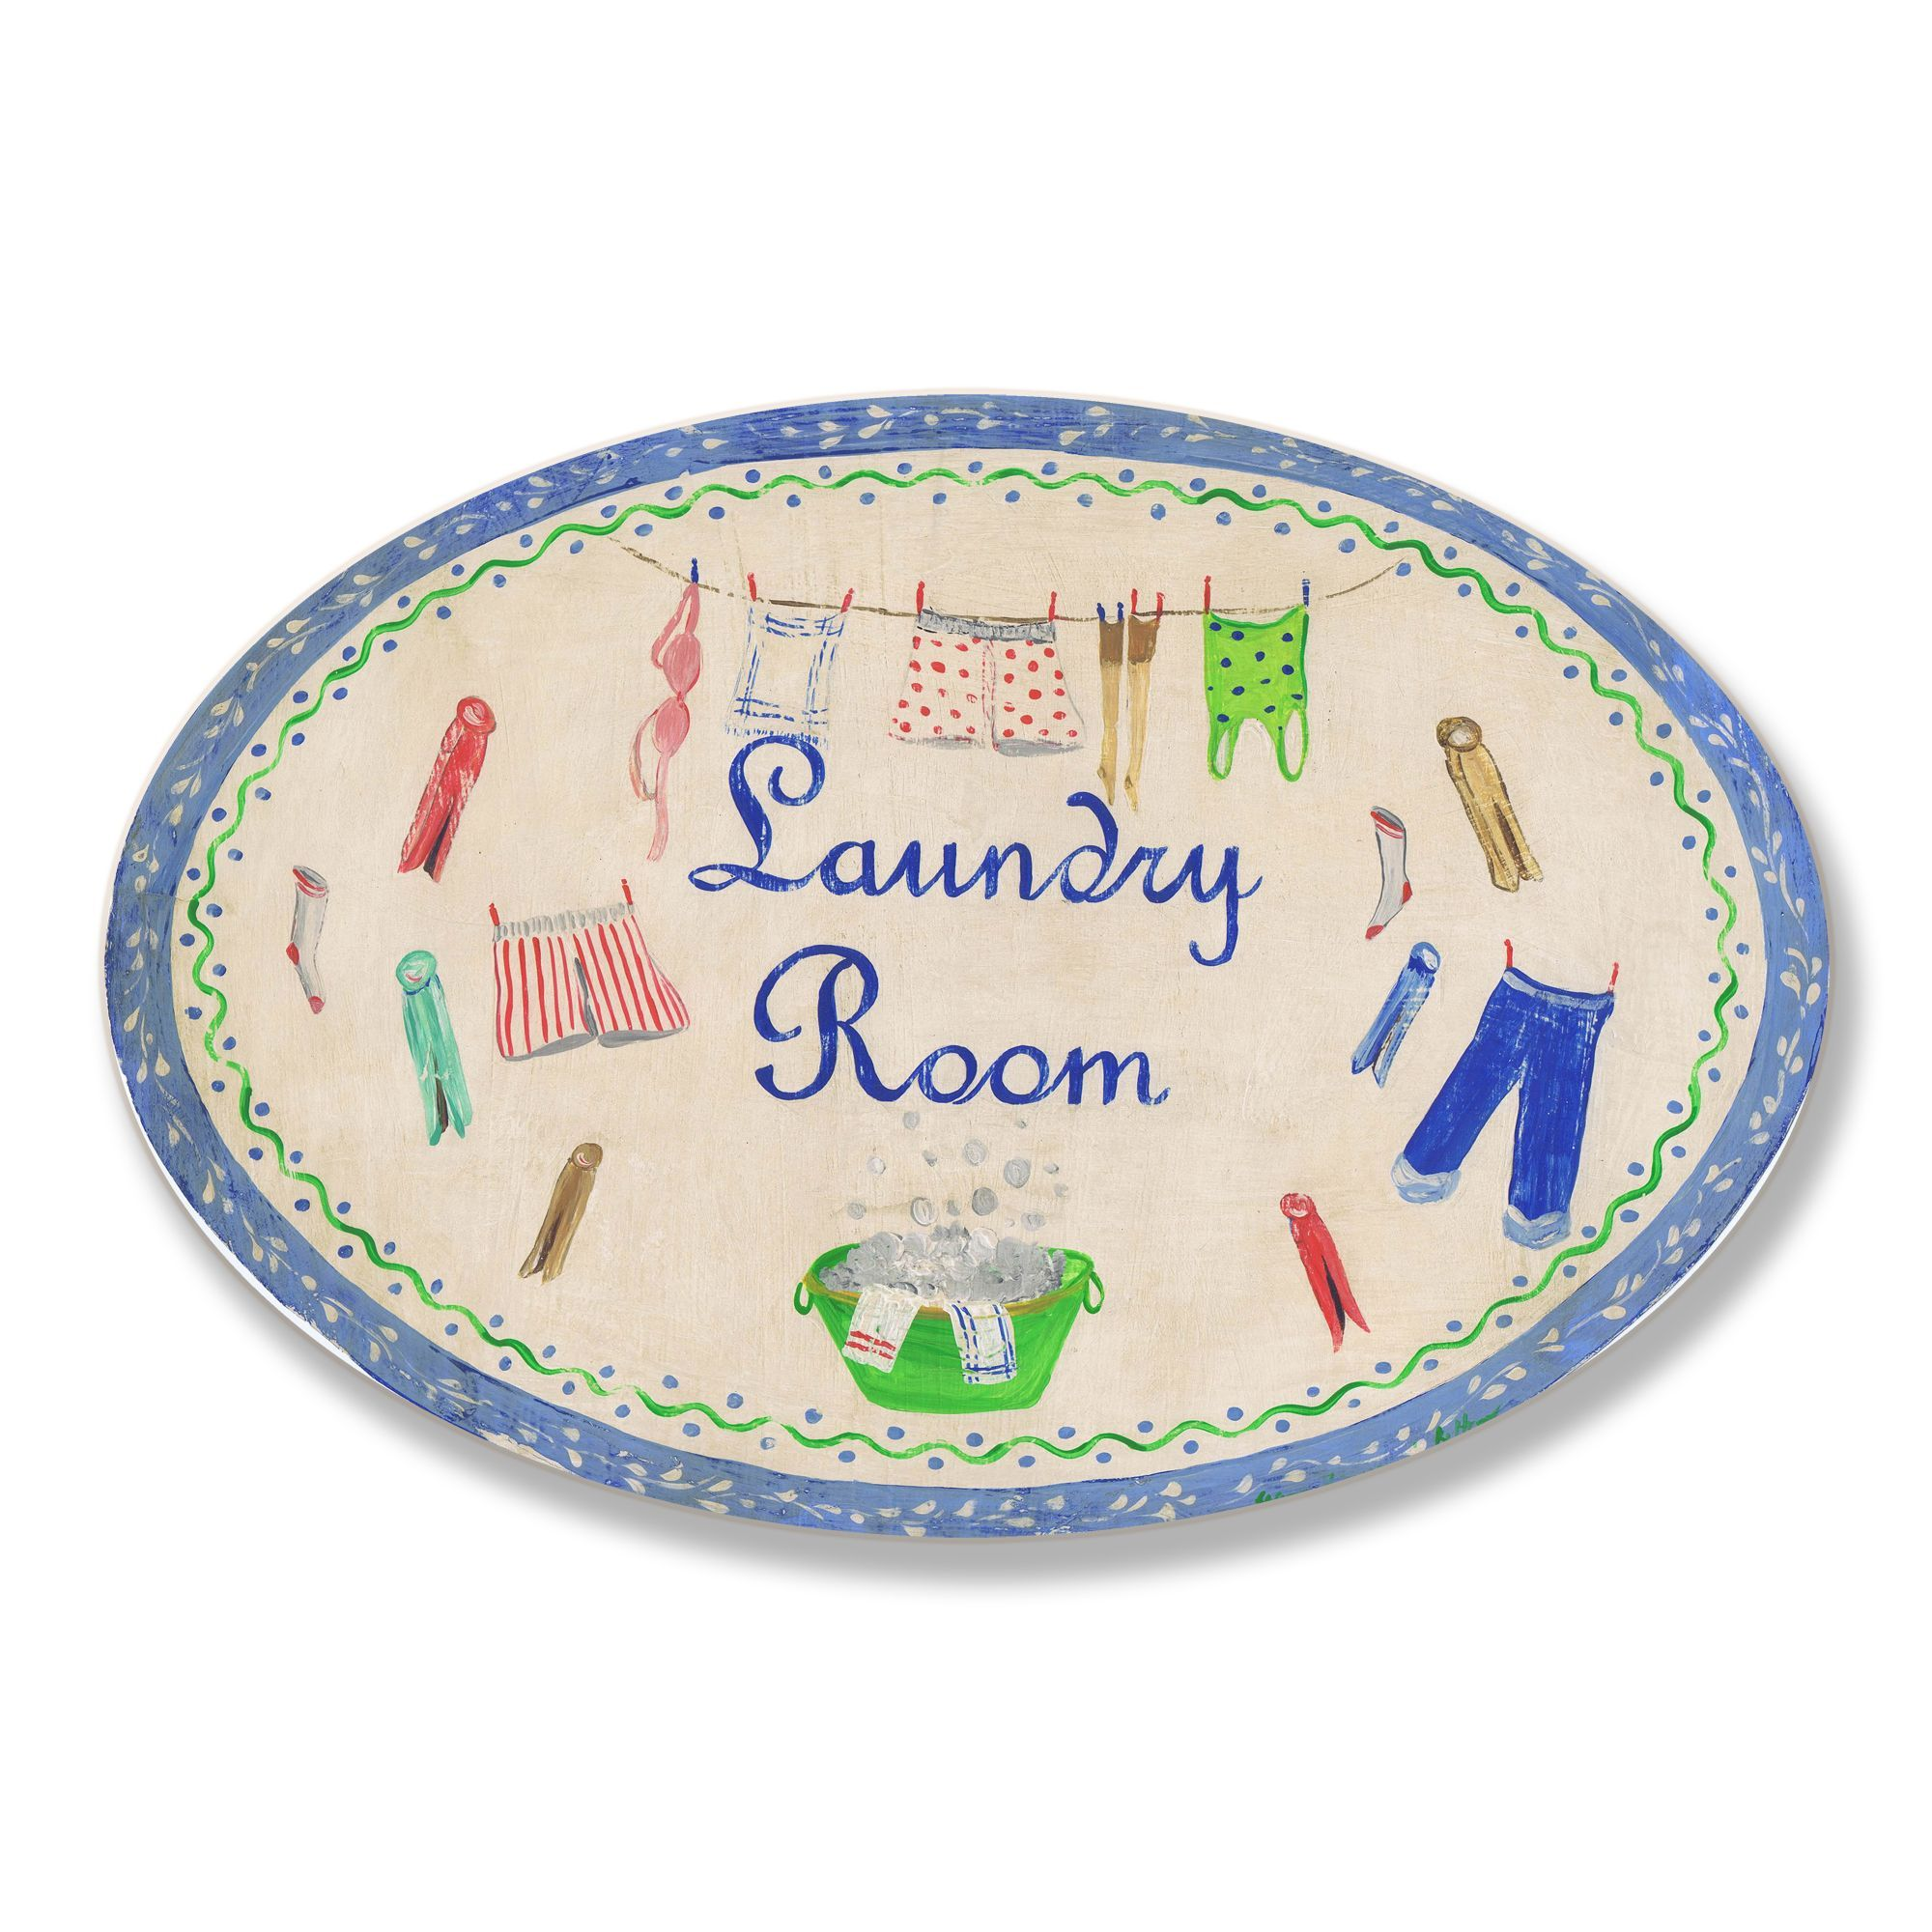 Laundry Wall Plaque Mesmerizing Stupell Blue Laundry Room Oval Wall Plaque Beige Mdf  Plaques 2018